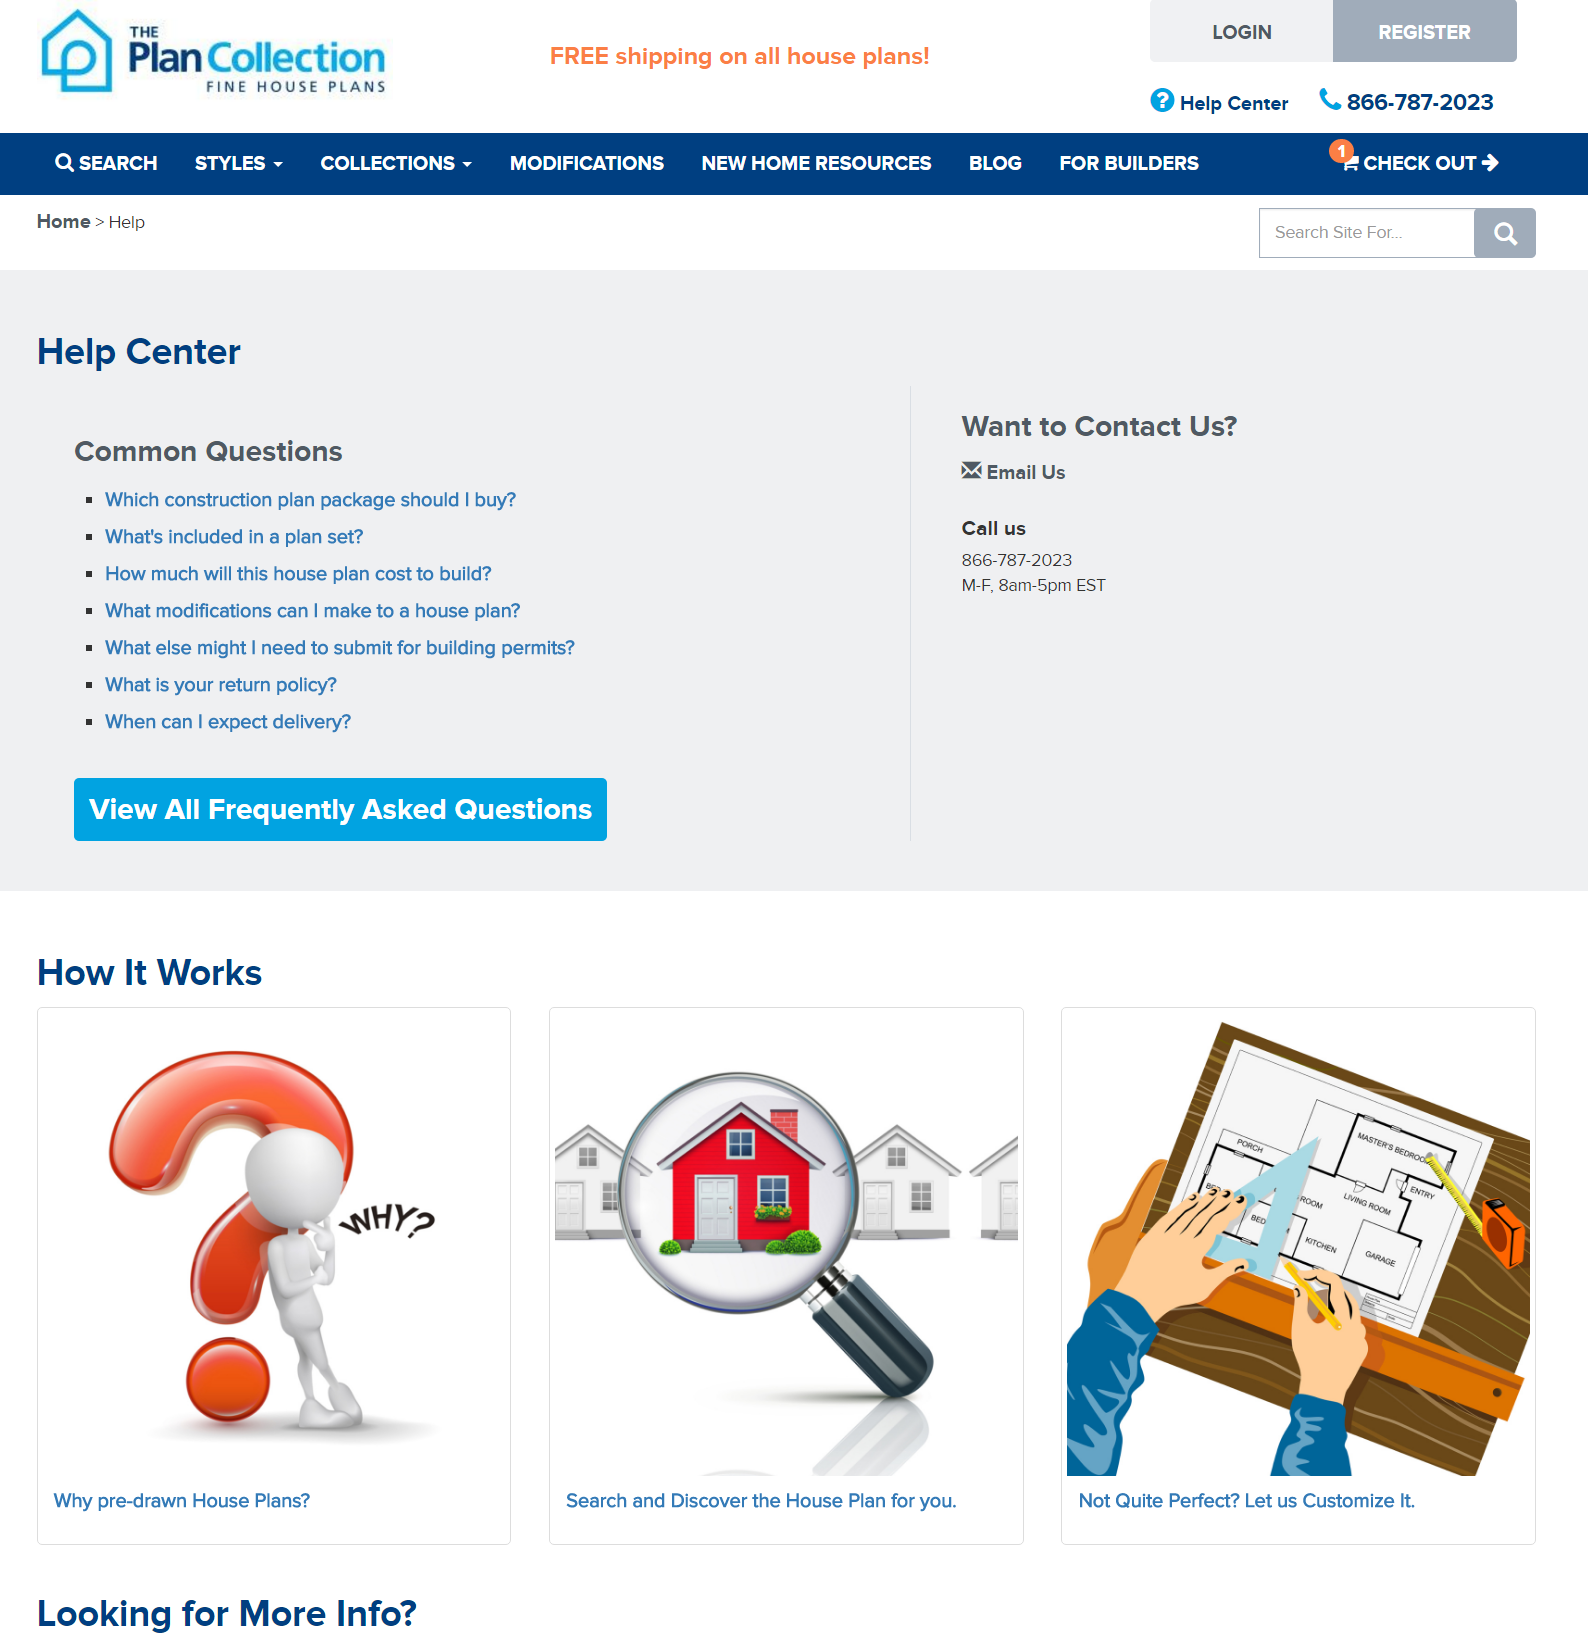 Help Center Page - Find House Plans at The Plan Collection